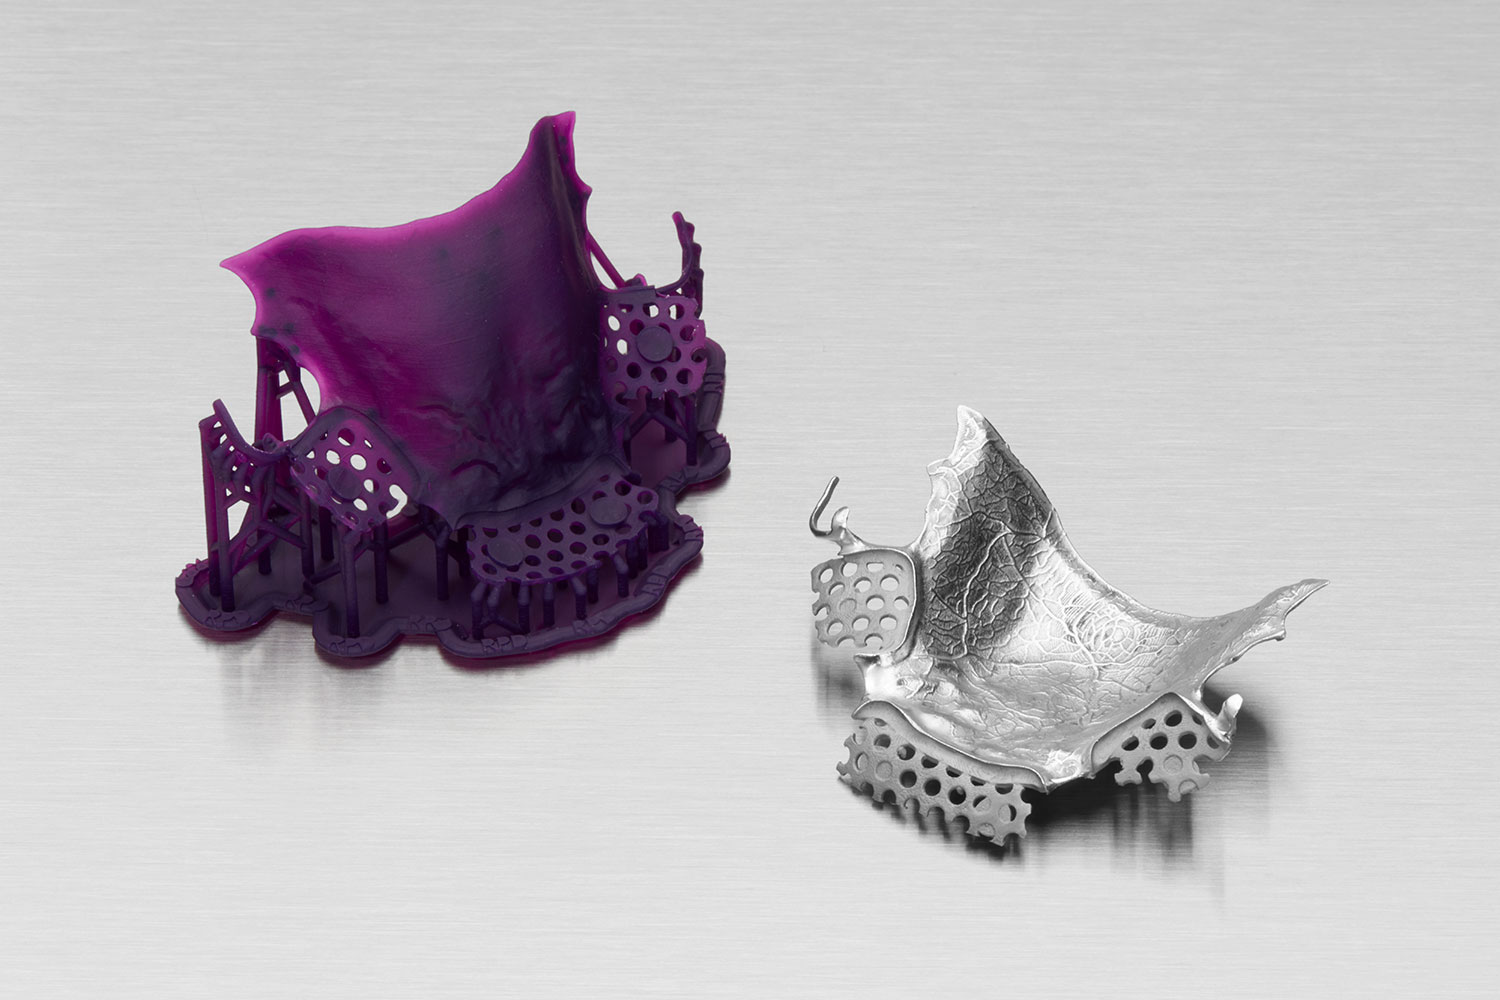 A 3D printed removable partial denture pattern and final cobalt-chromium frame